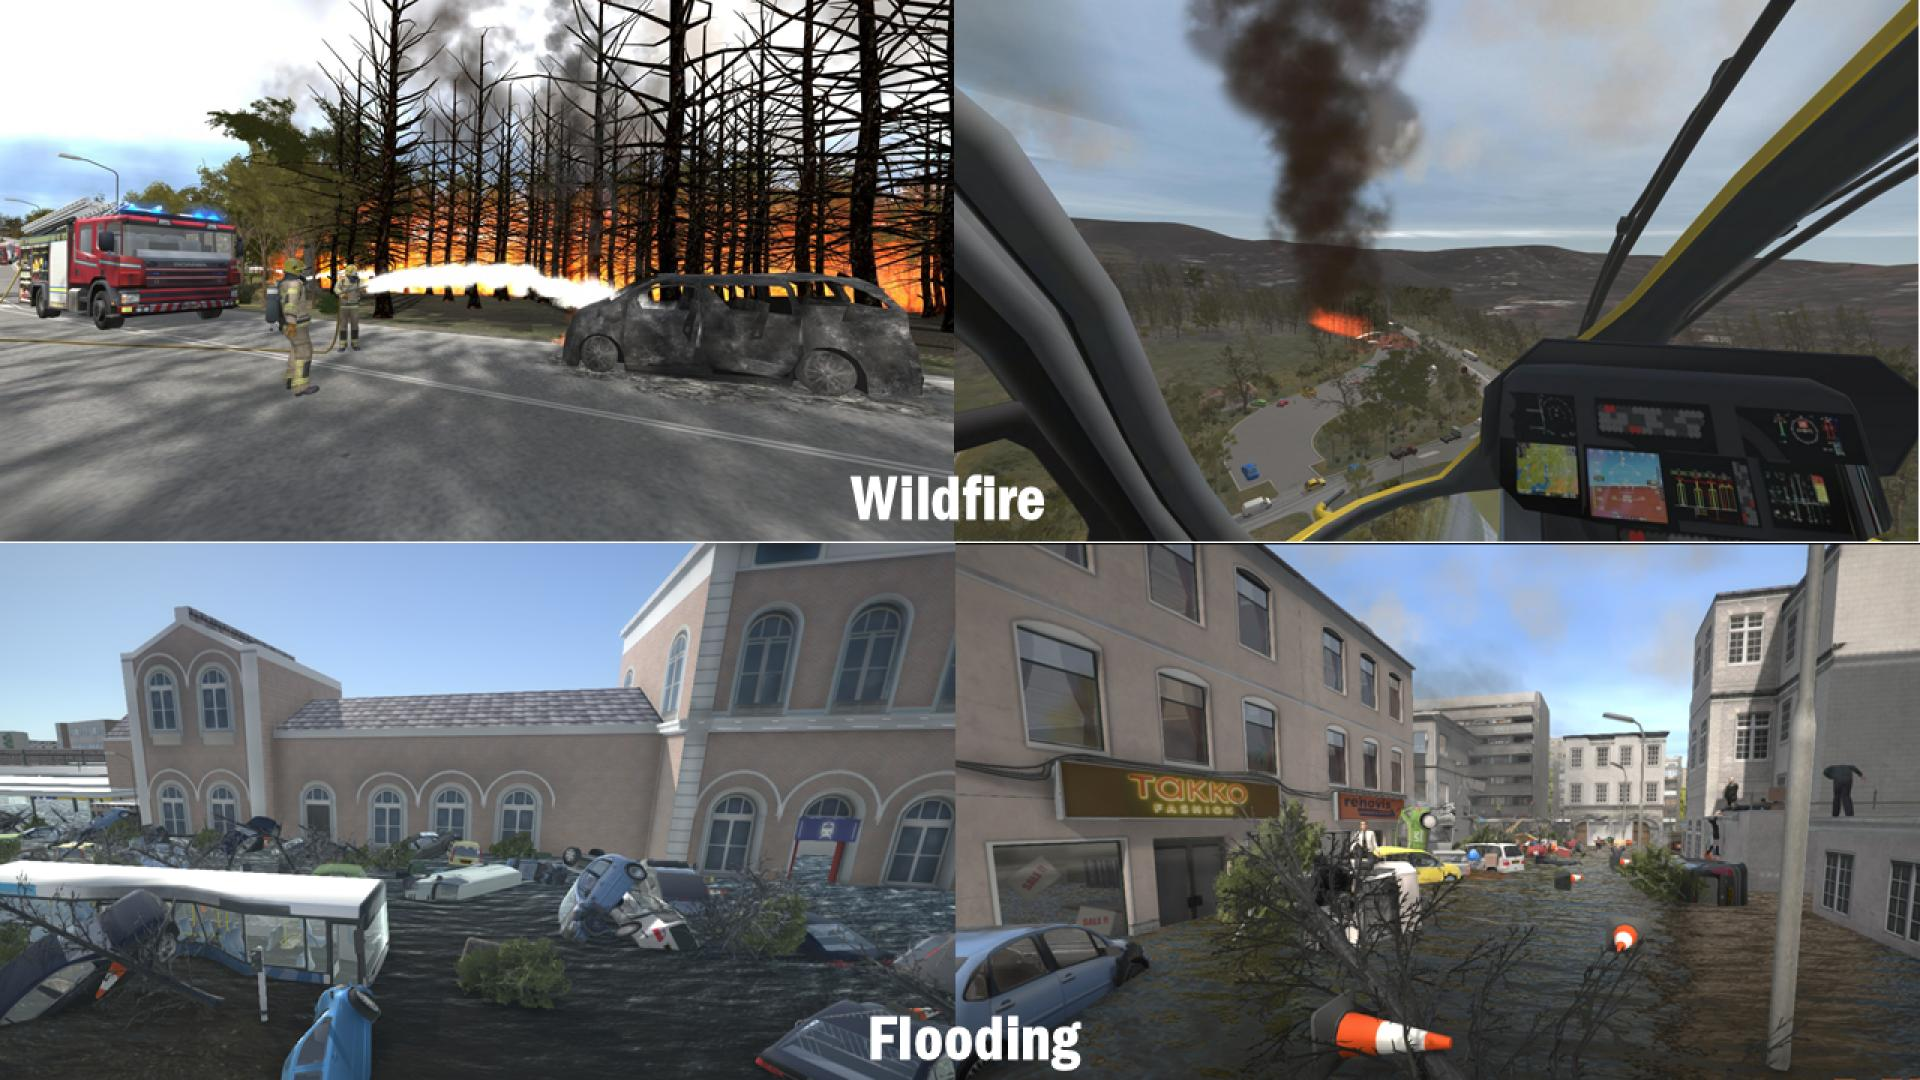 Screenshots of natural disaster scenes